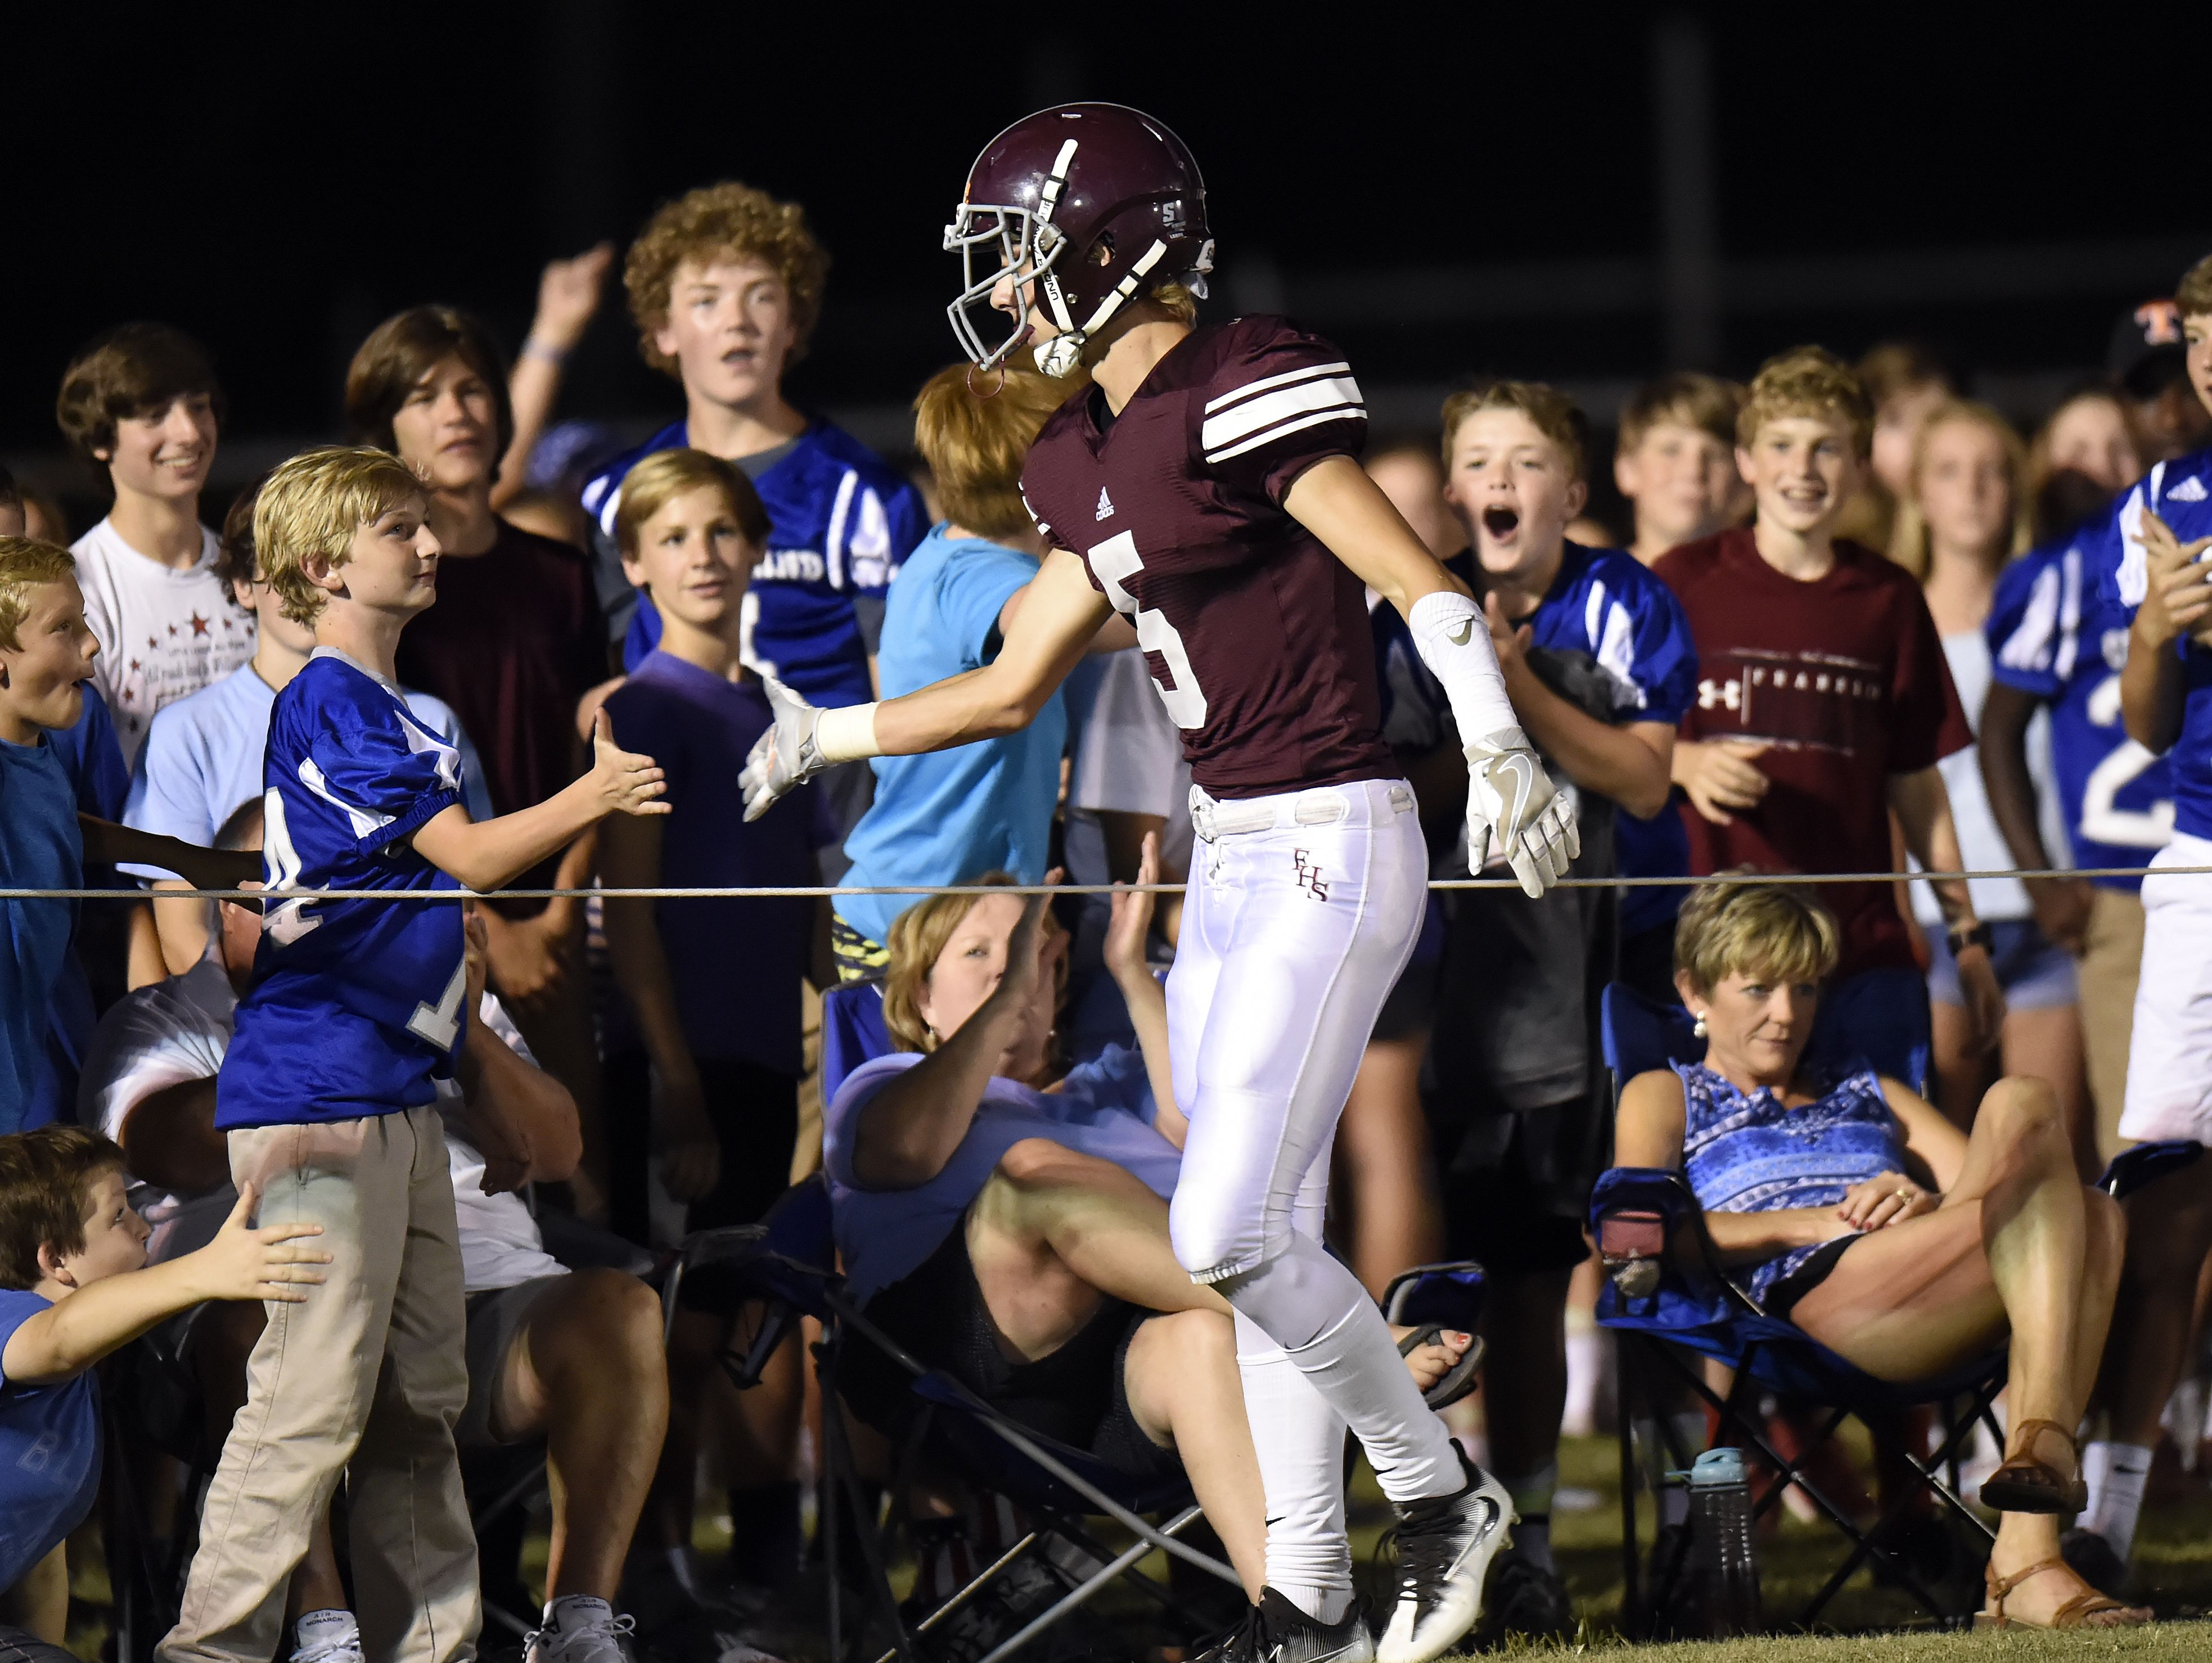 Franklin wide receiver Alex Gaca celebrates with fans after catching a pass for a touchdown during the first half against Brentwood.